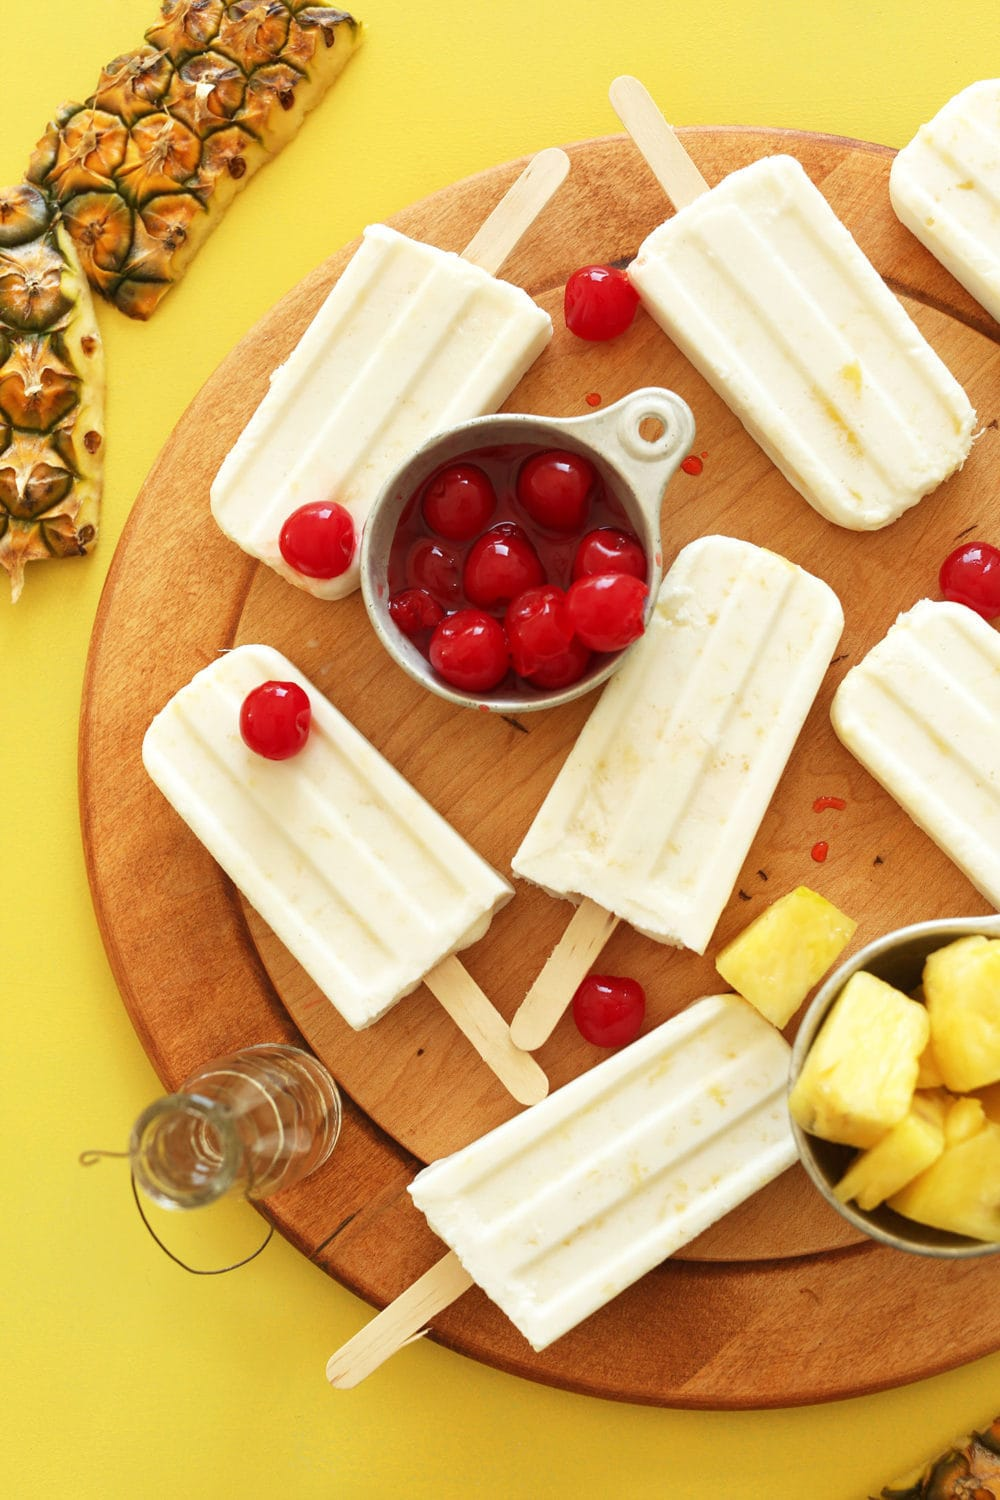 5-ingredient Pina Colada Pops from Minimalist Baker - 10 Best Healthy Food Blogs - @thefitcookie #food #recipes #fitfluential #healthy #allergyfriendly